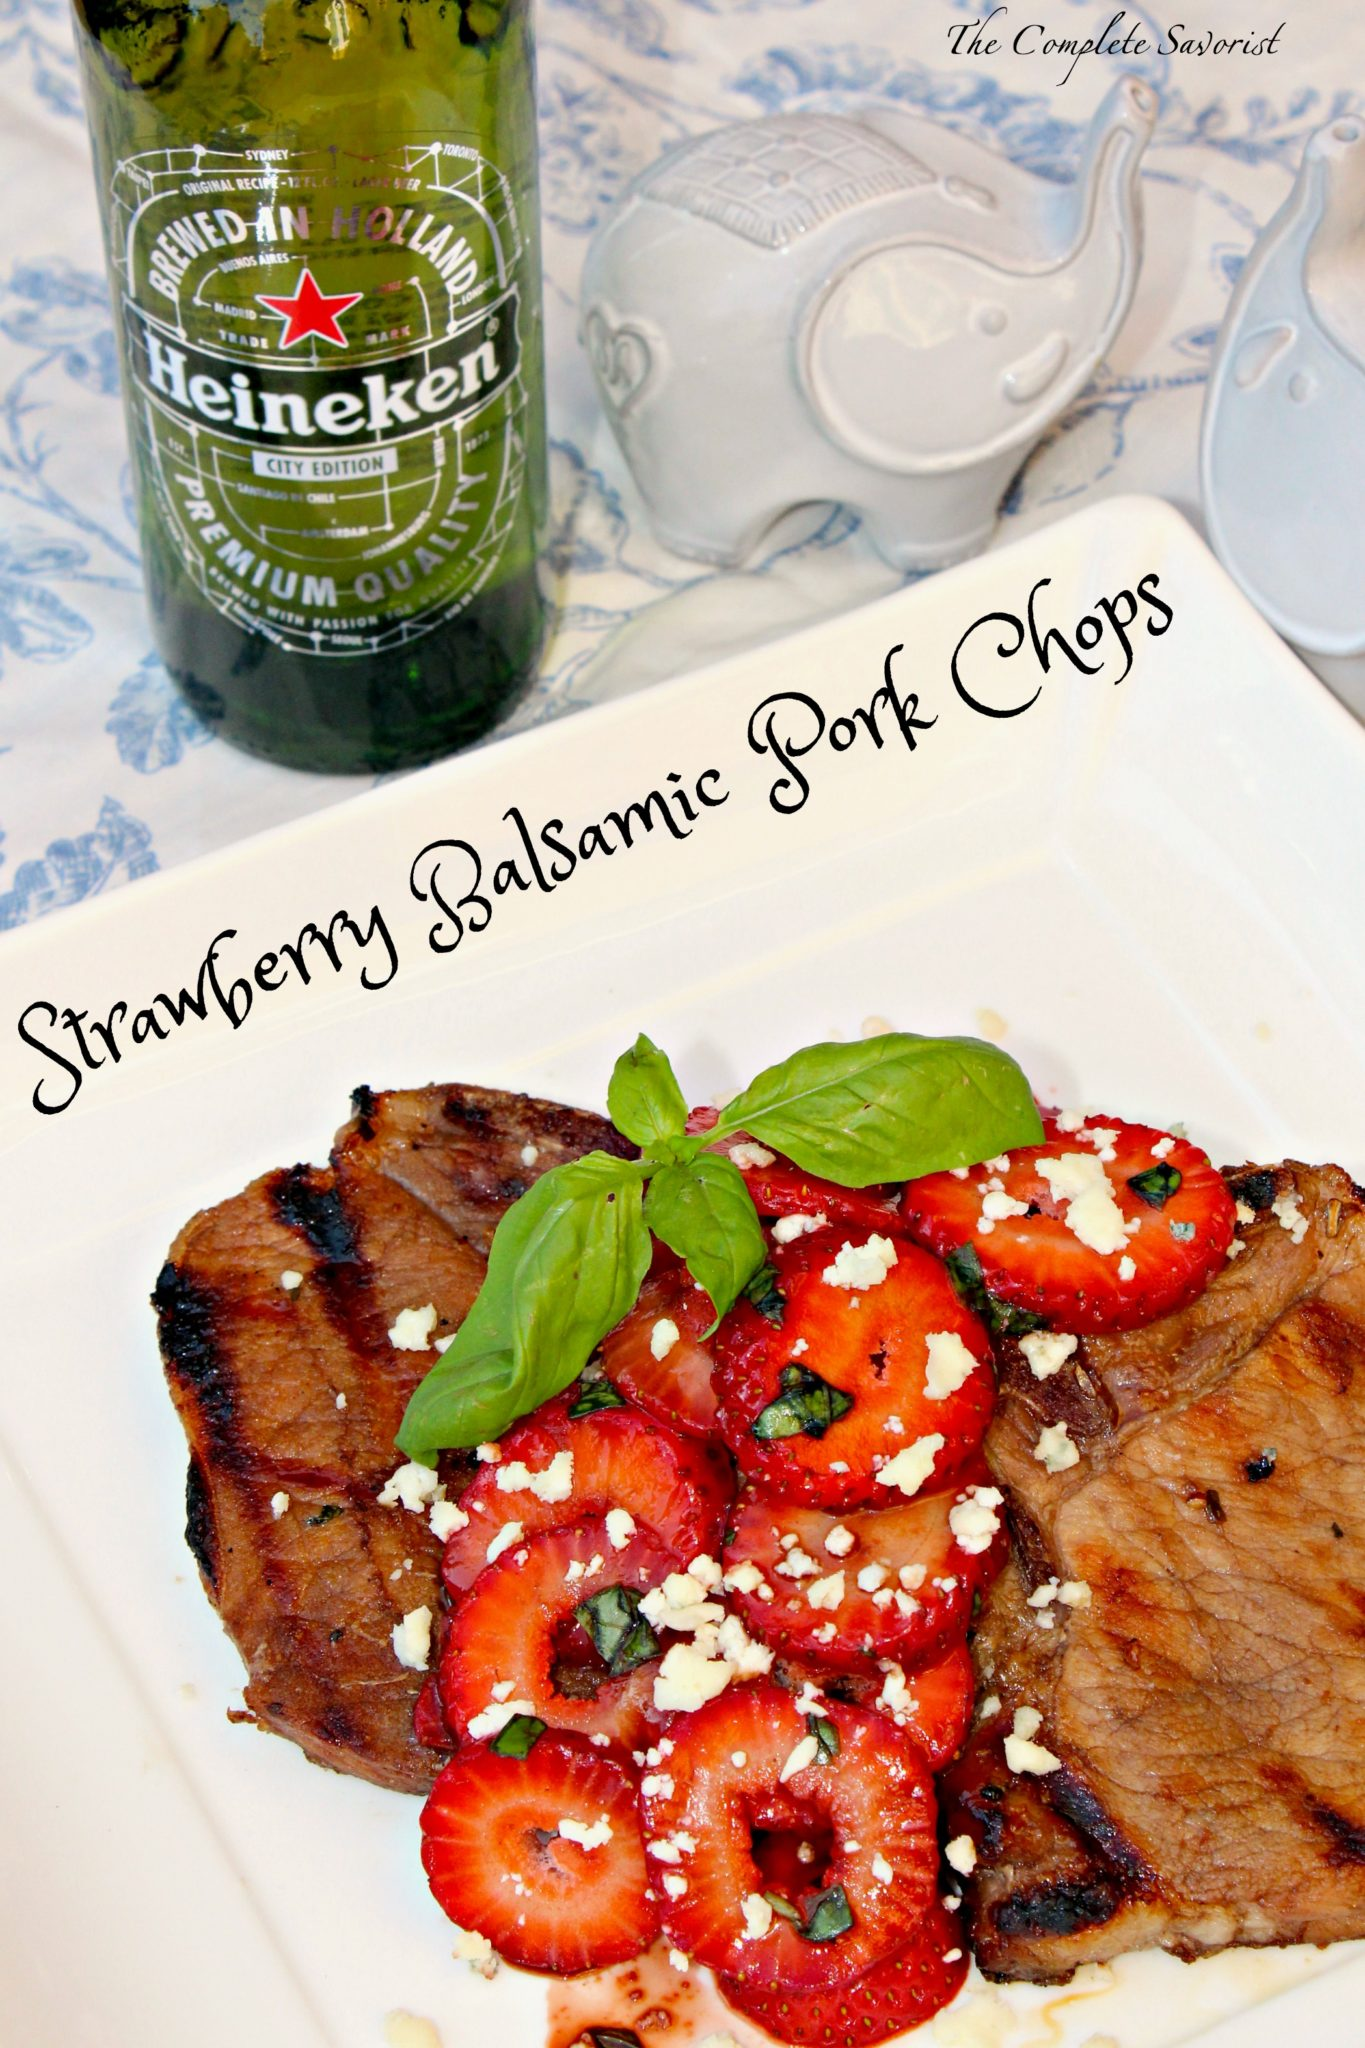 The Chops Had Been Marinated In A Balsamic Vinegar